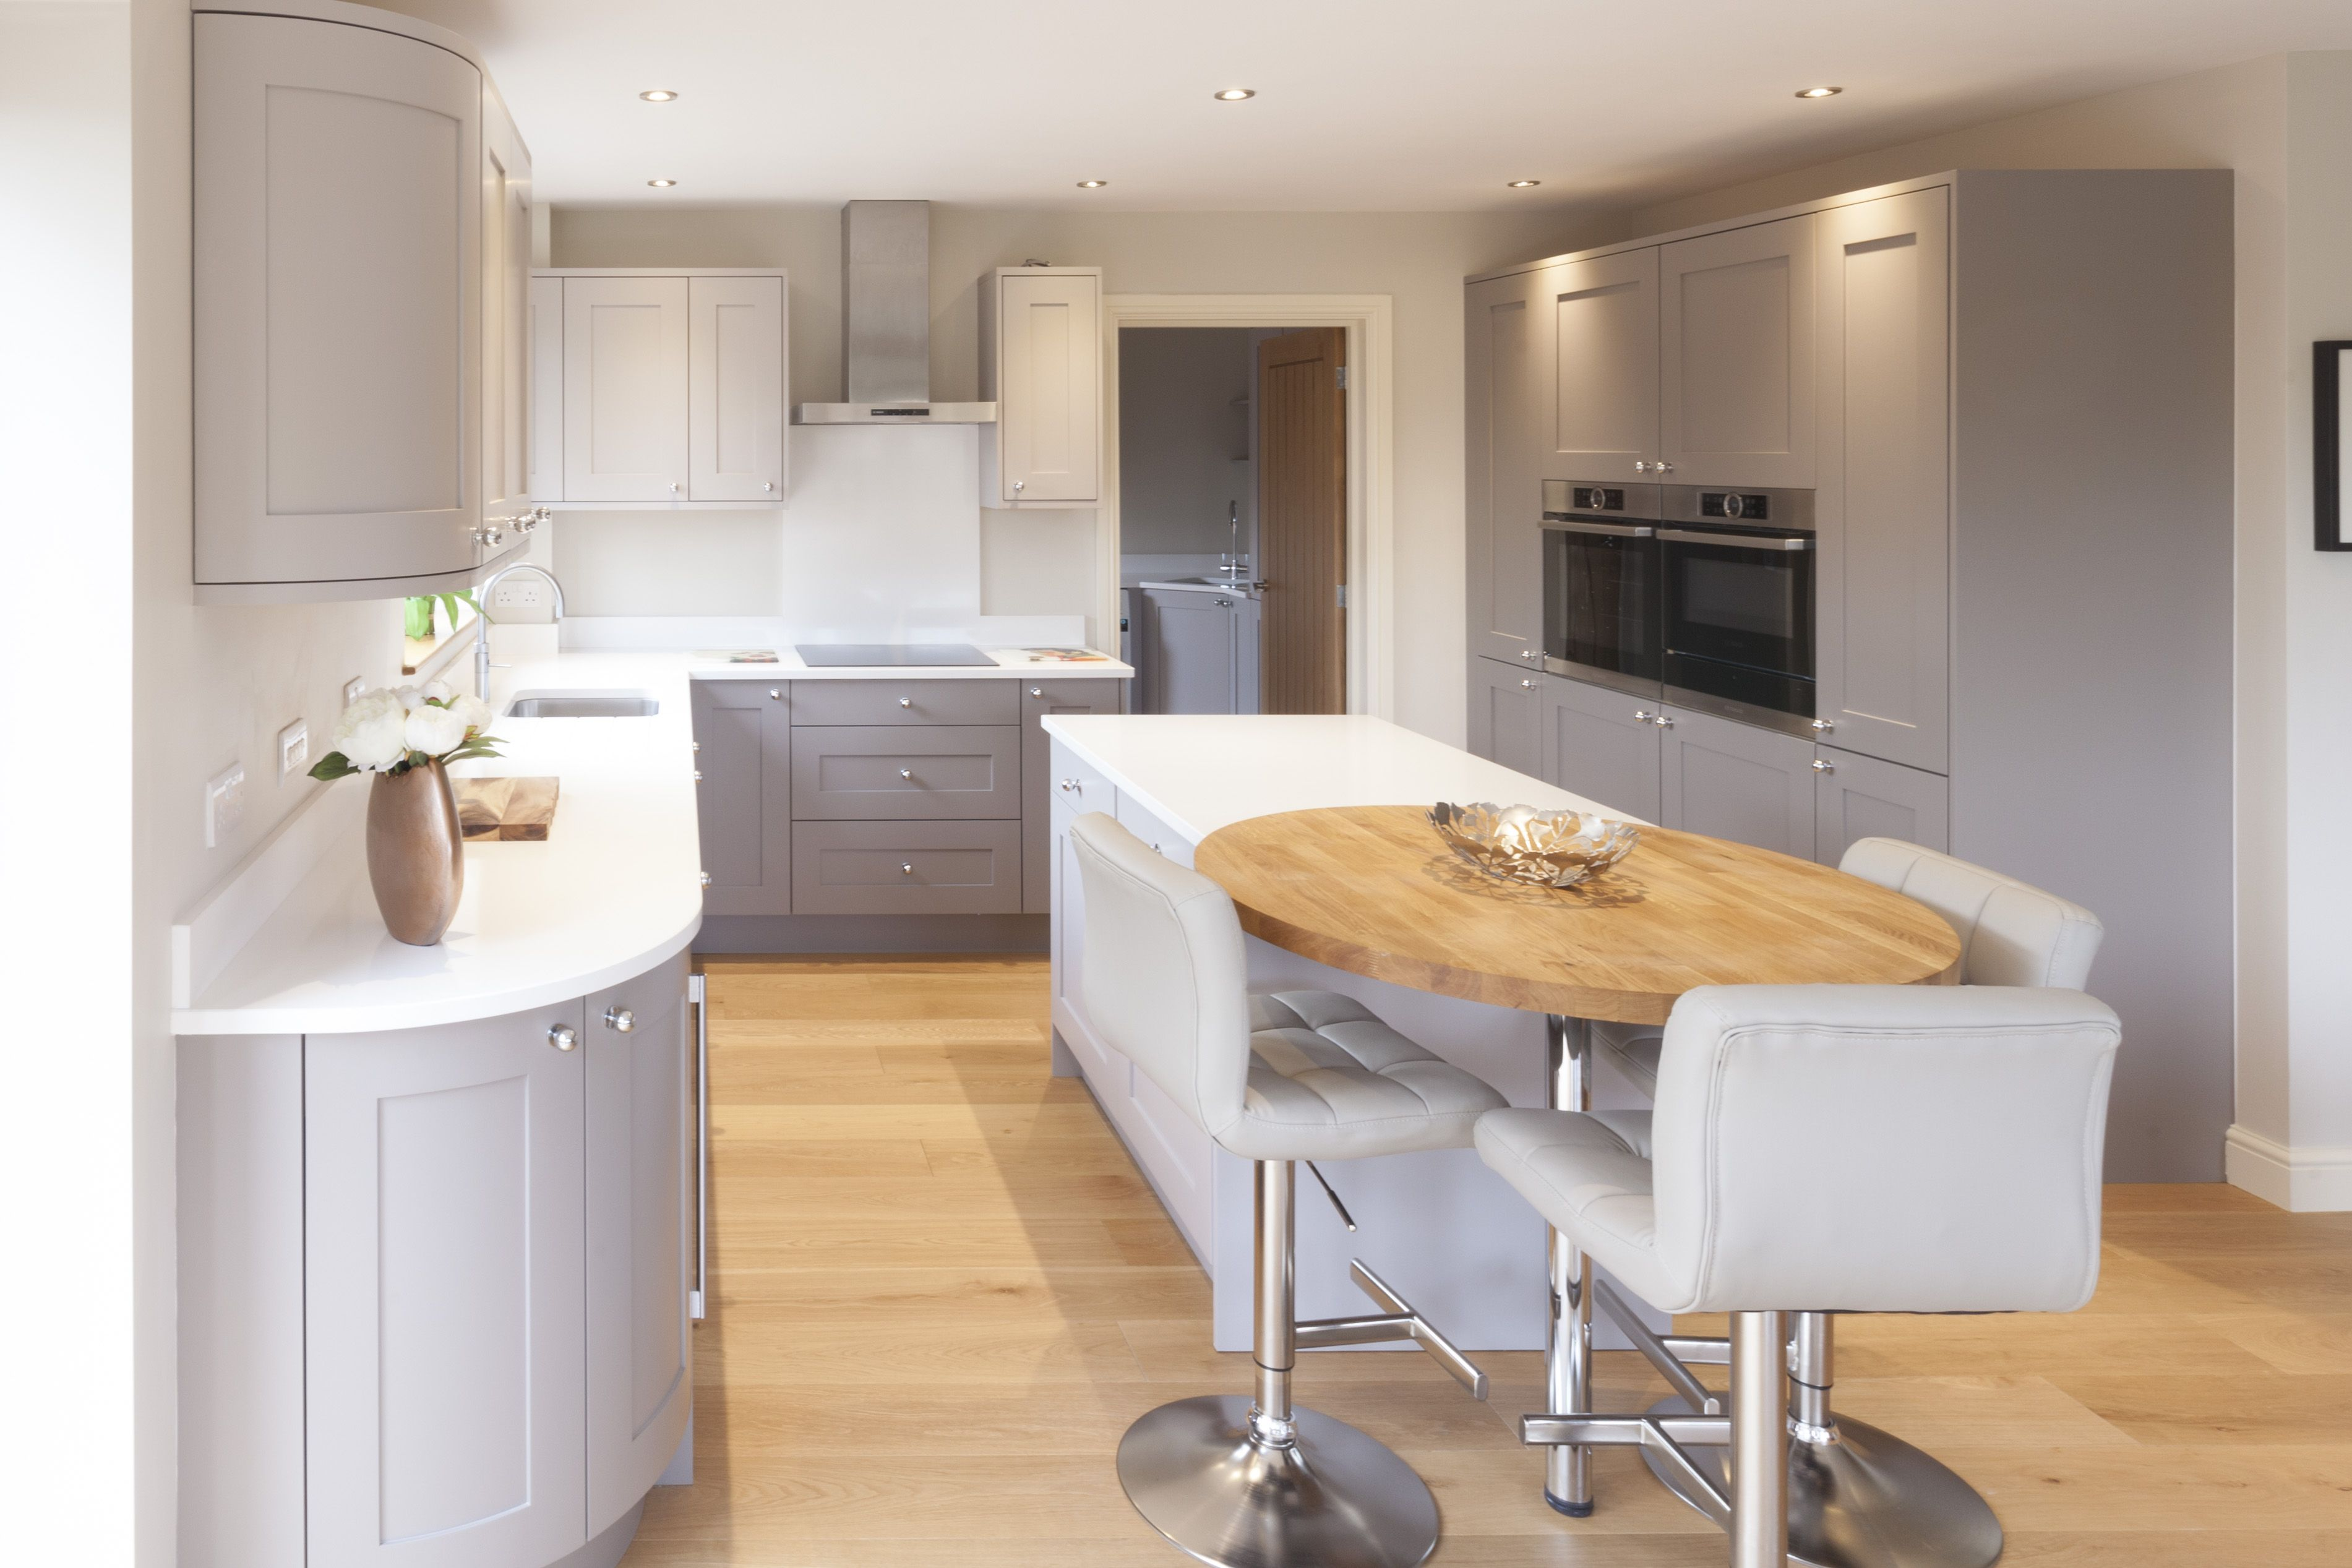 Project Album Sherwin Hall Bespoke Fitted Kitchens Leicester Great Kitchen Makeover Ideas In 2019 Home Decor Kitchen Kitchen Design Diy Kitchen